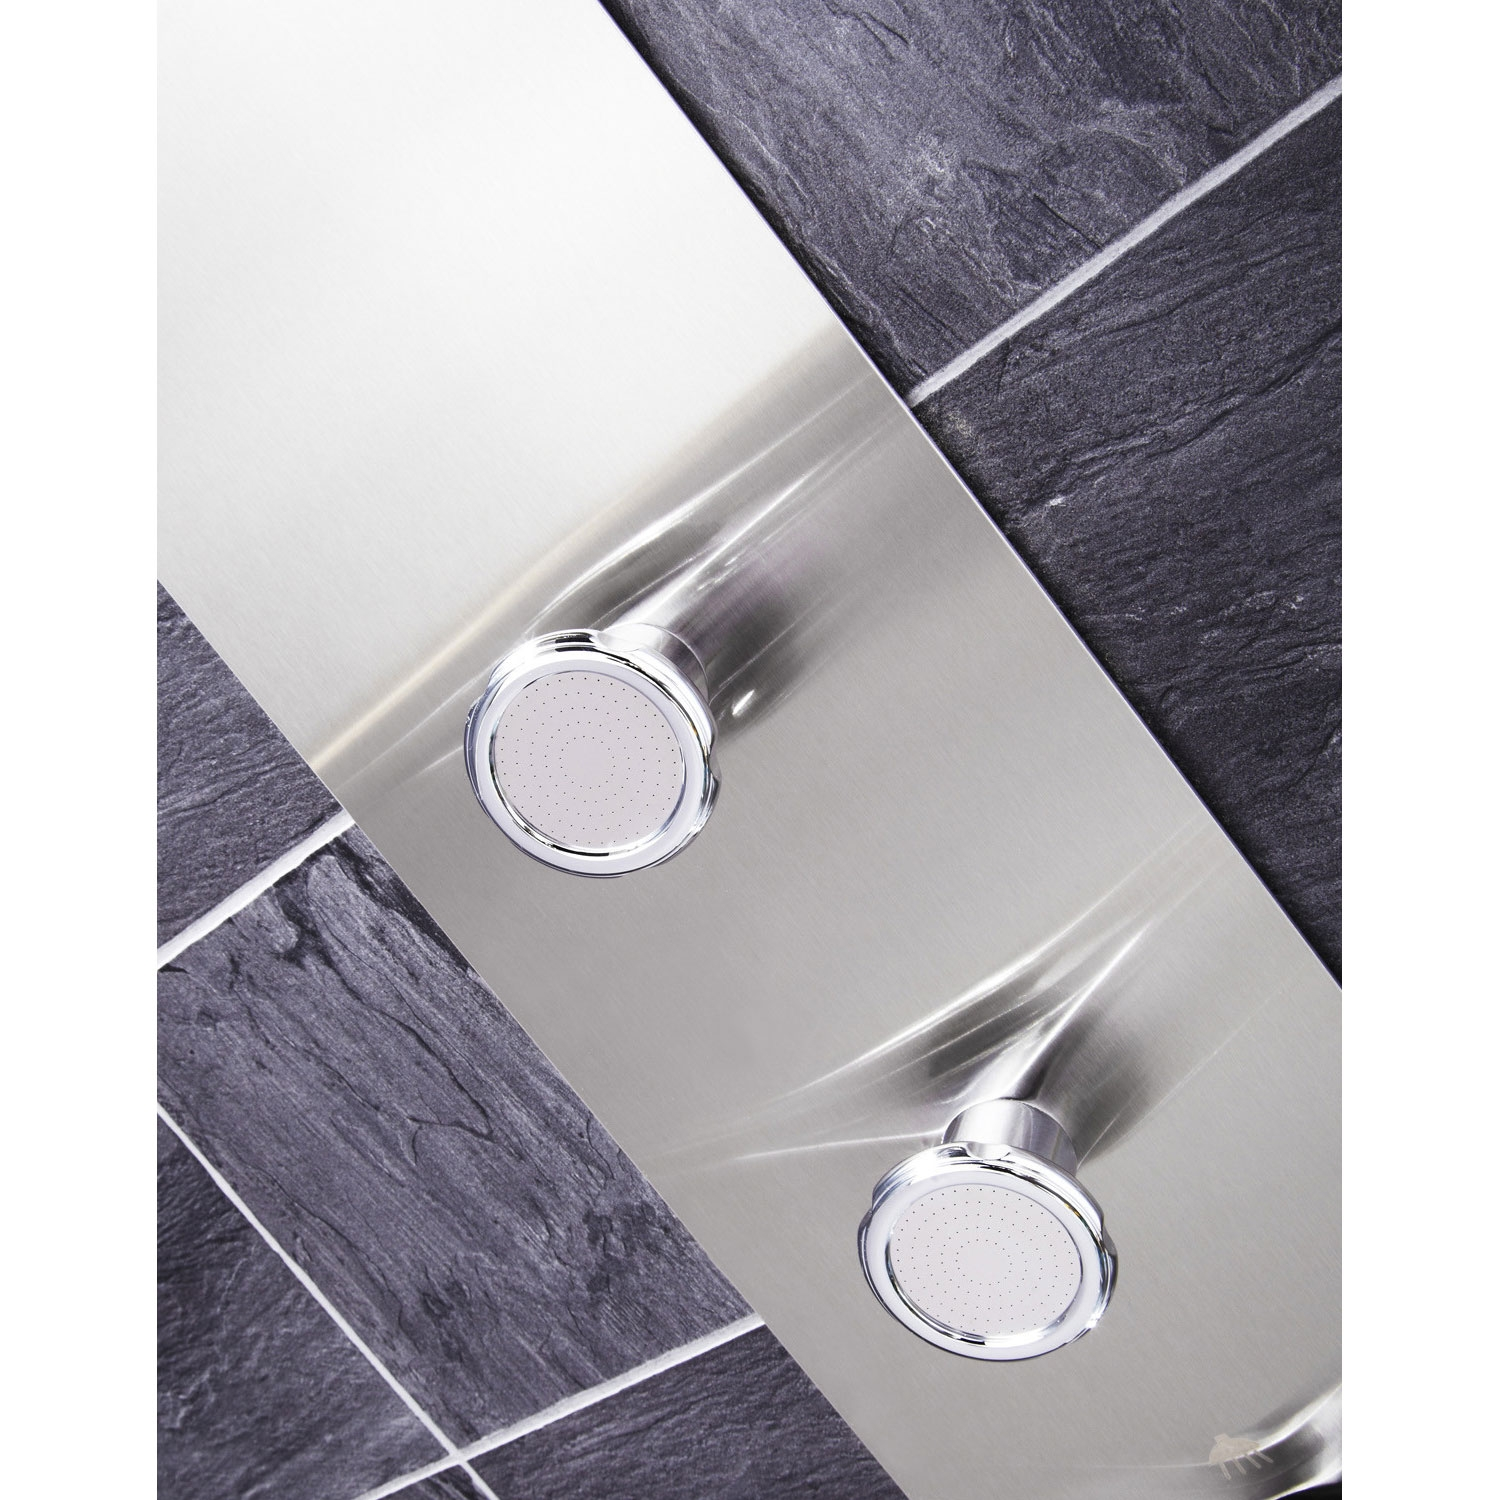 Verona Modique Shower Panel 3 Round Body Jets with Shower Hand-0